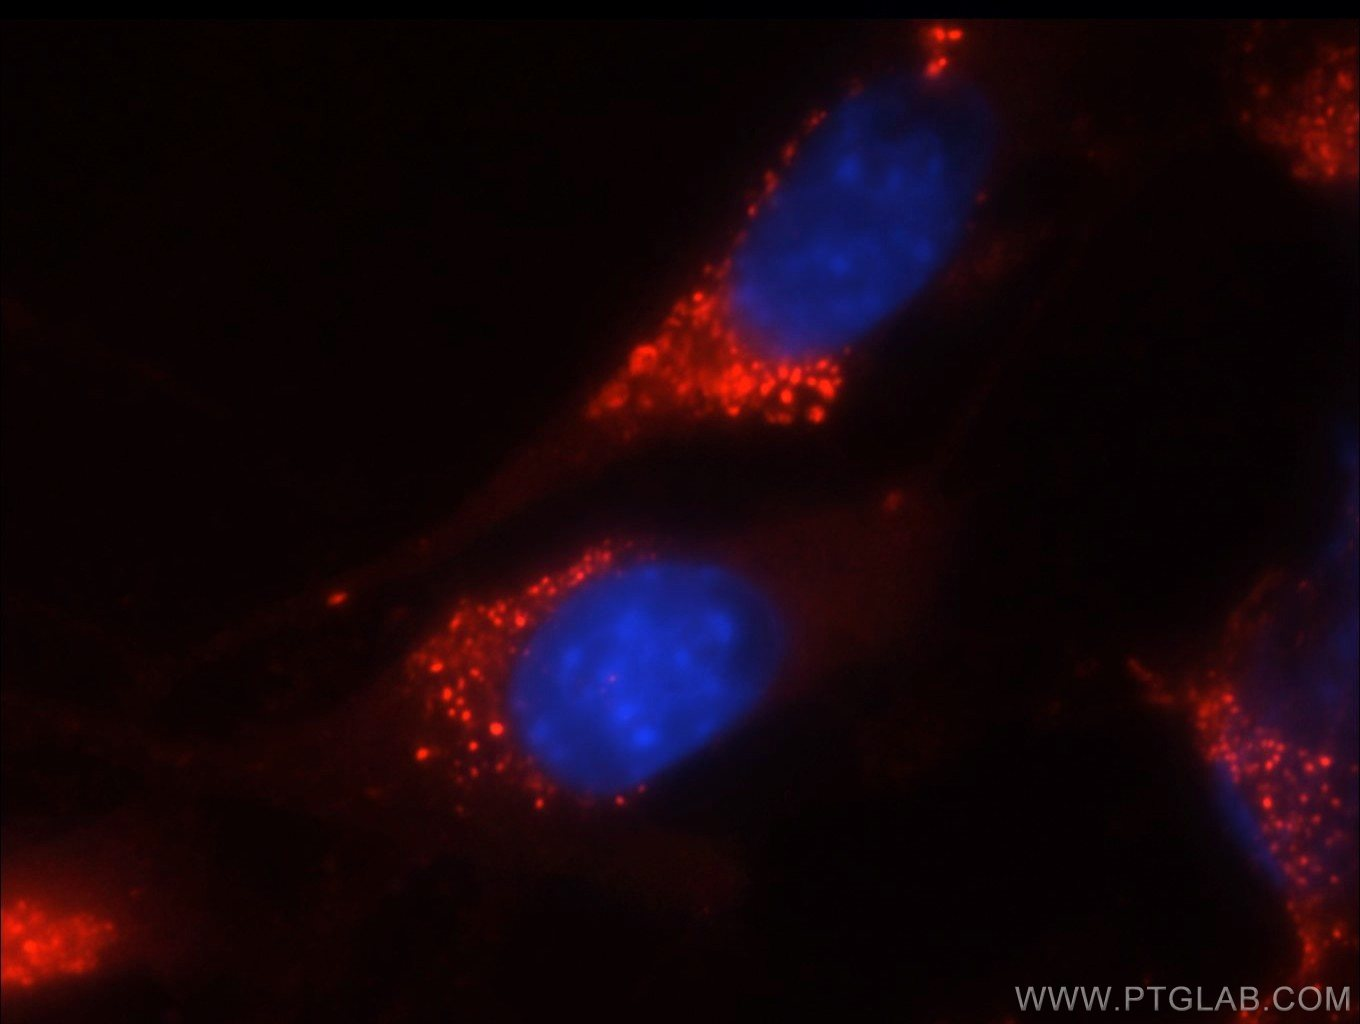 IF Staining of NIH/3T3 using 60006-1-Ig